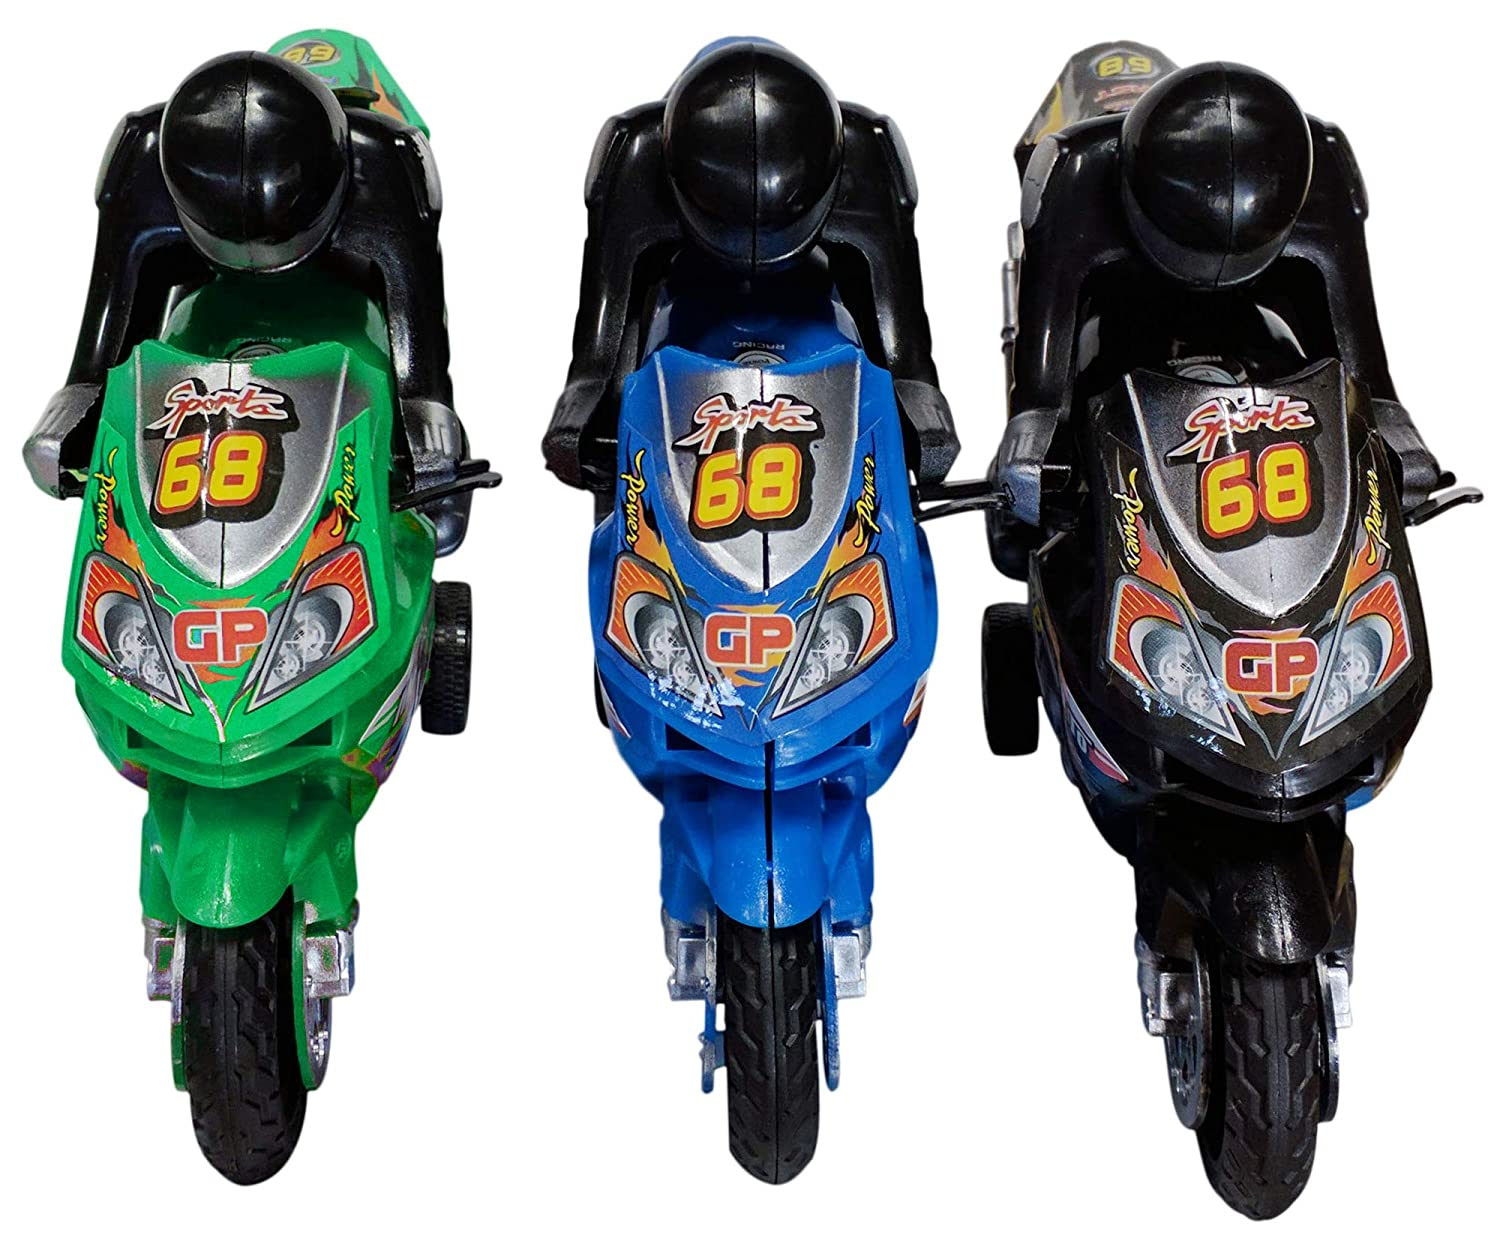 Best Assorted Colors 3 Pc Small Green Red Black Blue Toy Motorcycle Set for Boy Girl Fun Gag New Easter Basket Stuffer Gift Idea Under 20 Dollars Sale Little Kid Toddler Youth Child Son Brother